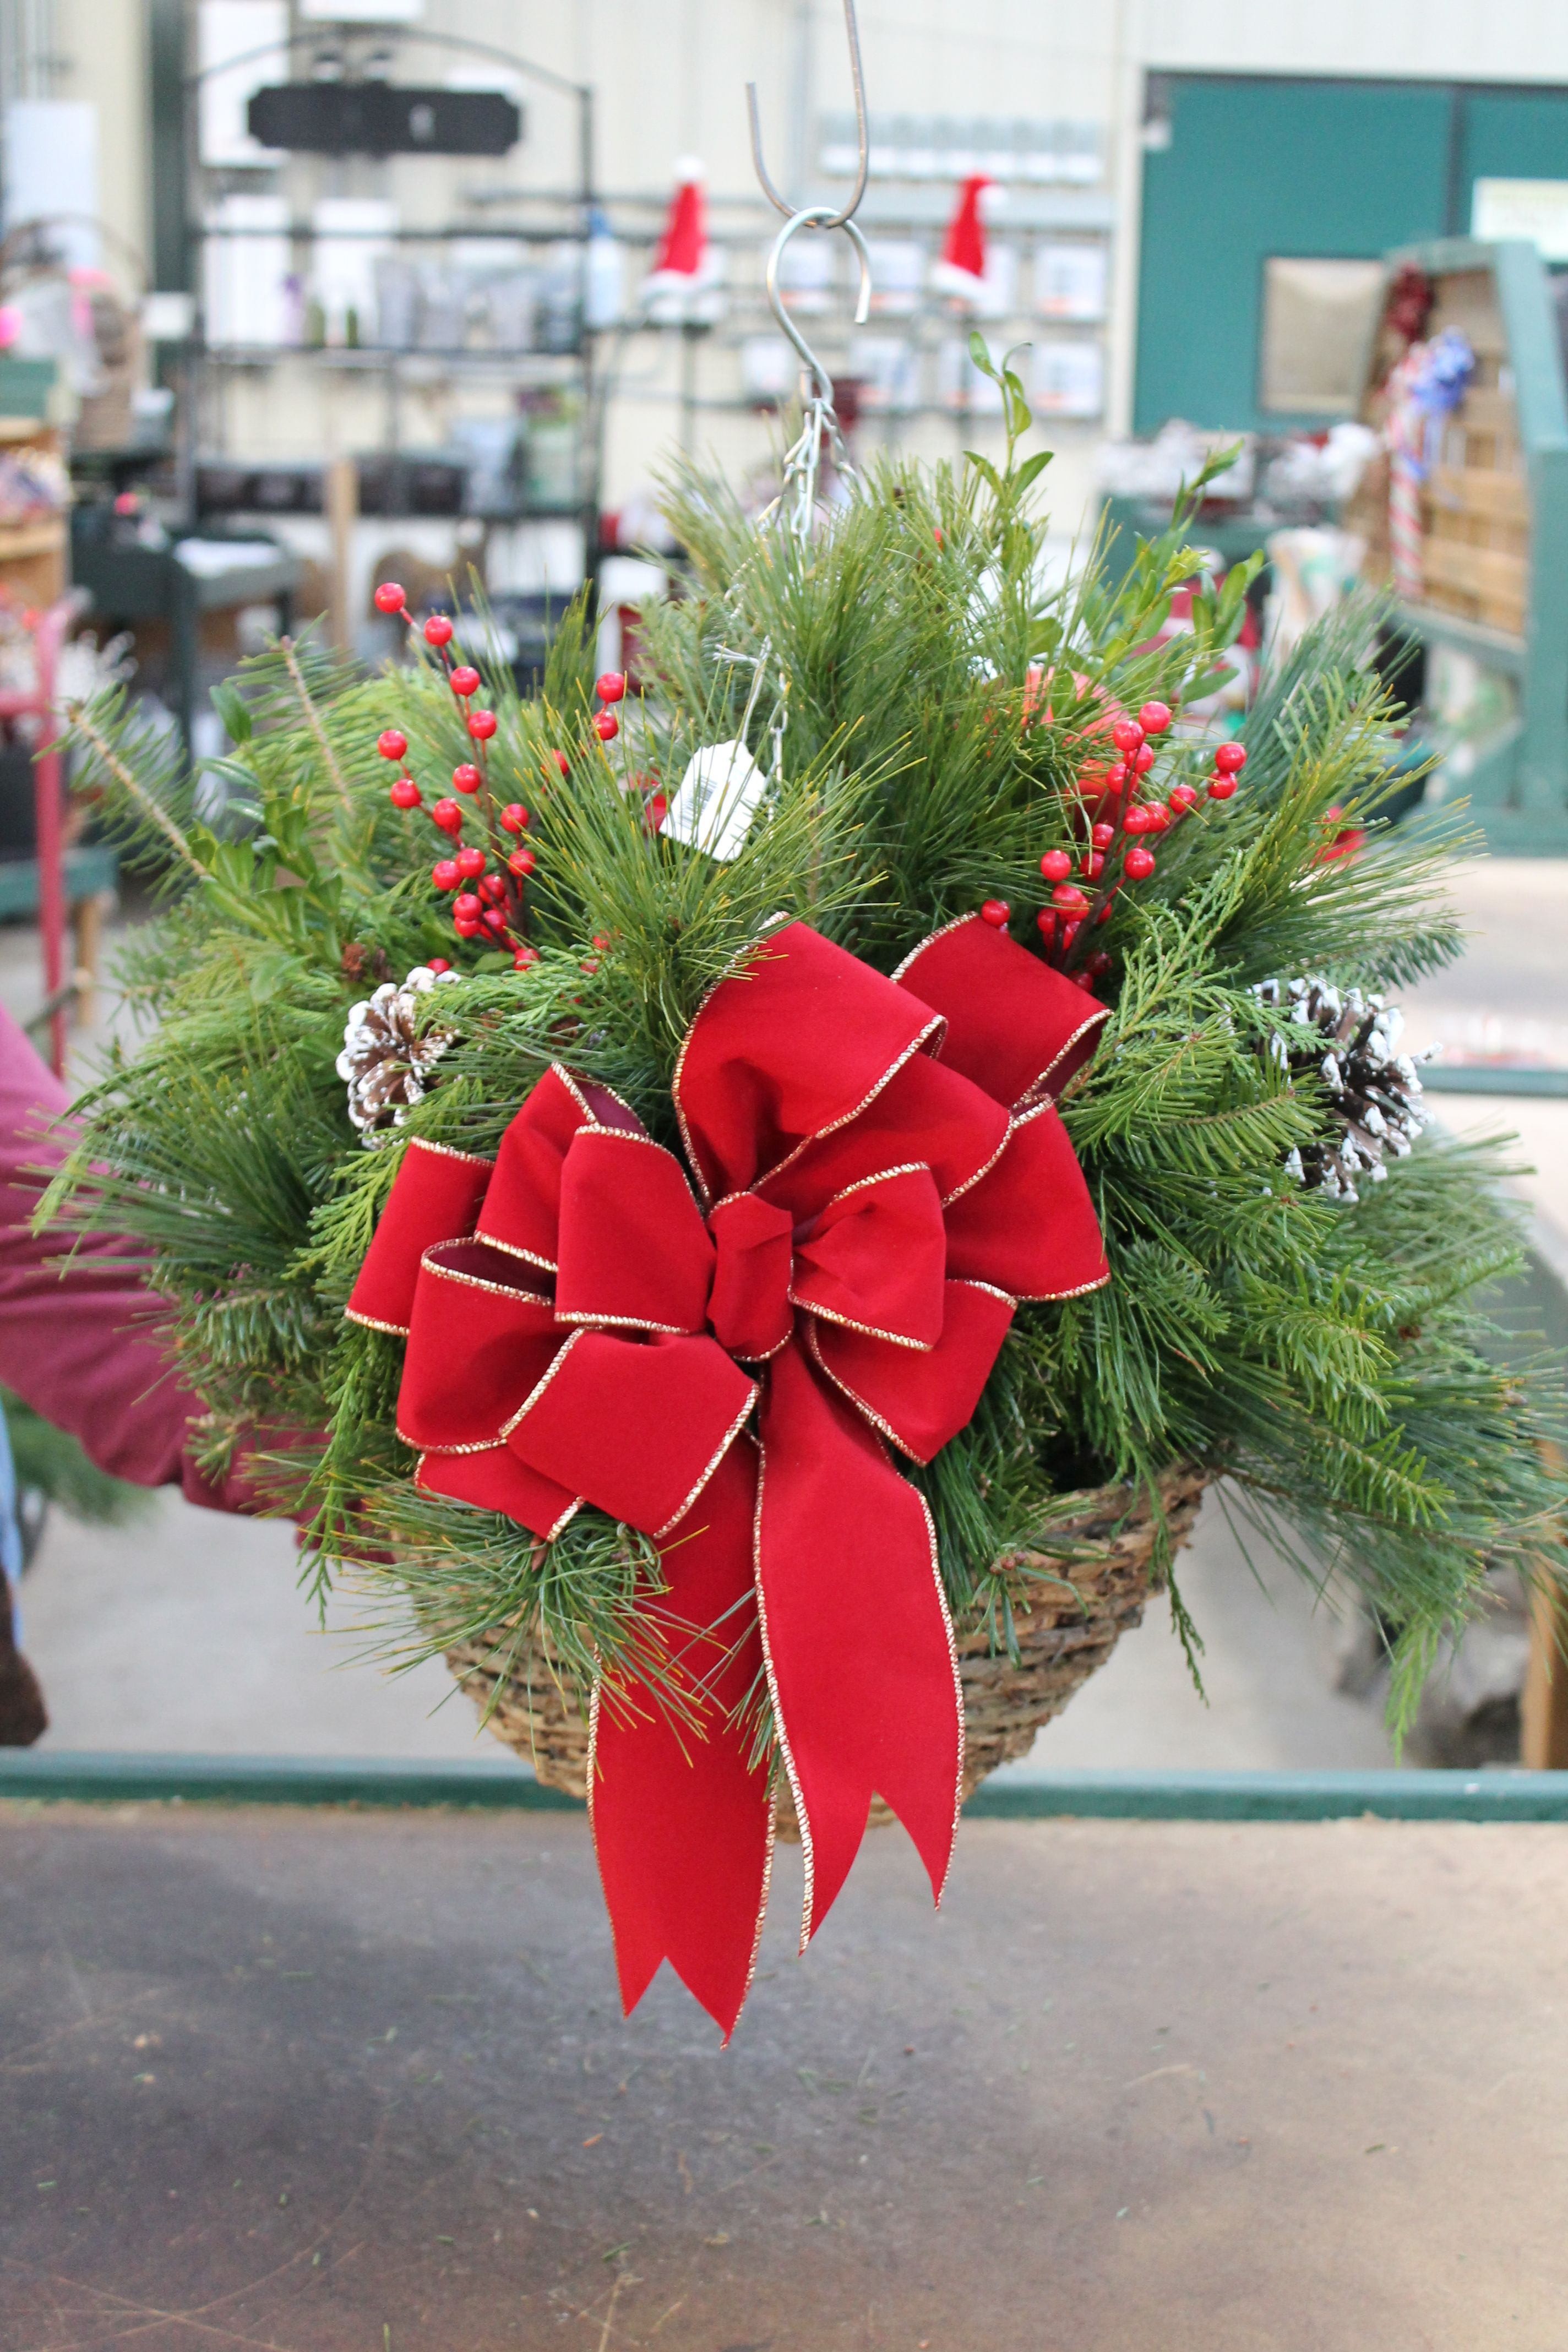 December 4th & 7th 10 am Add a festive look outdoors with a